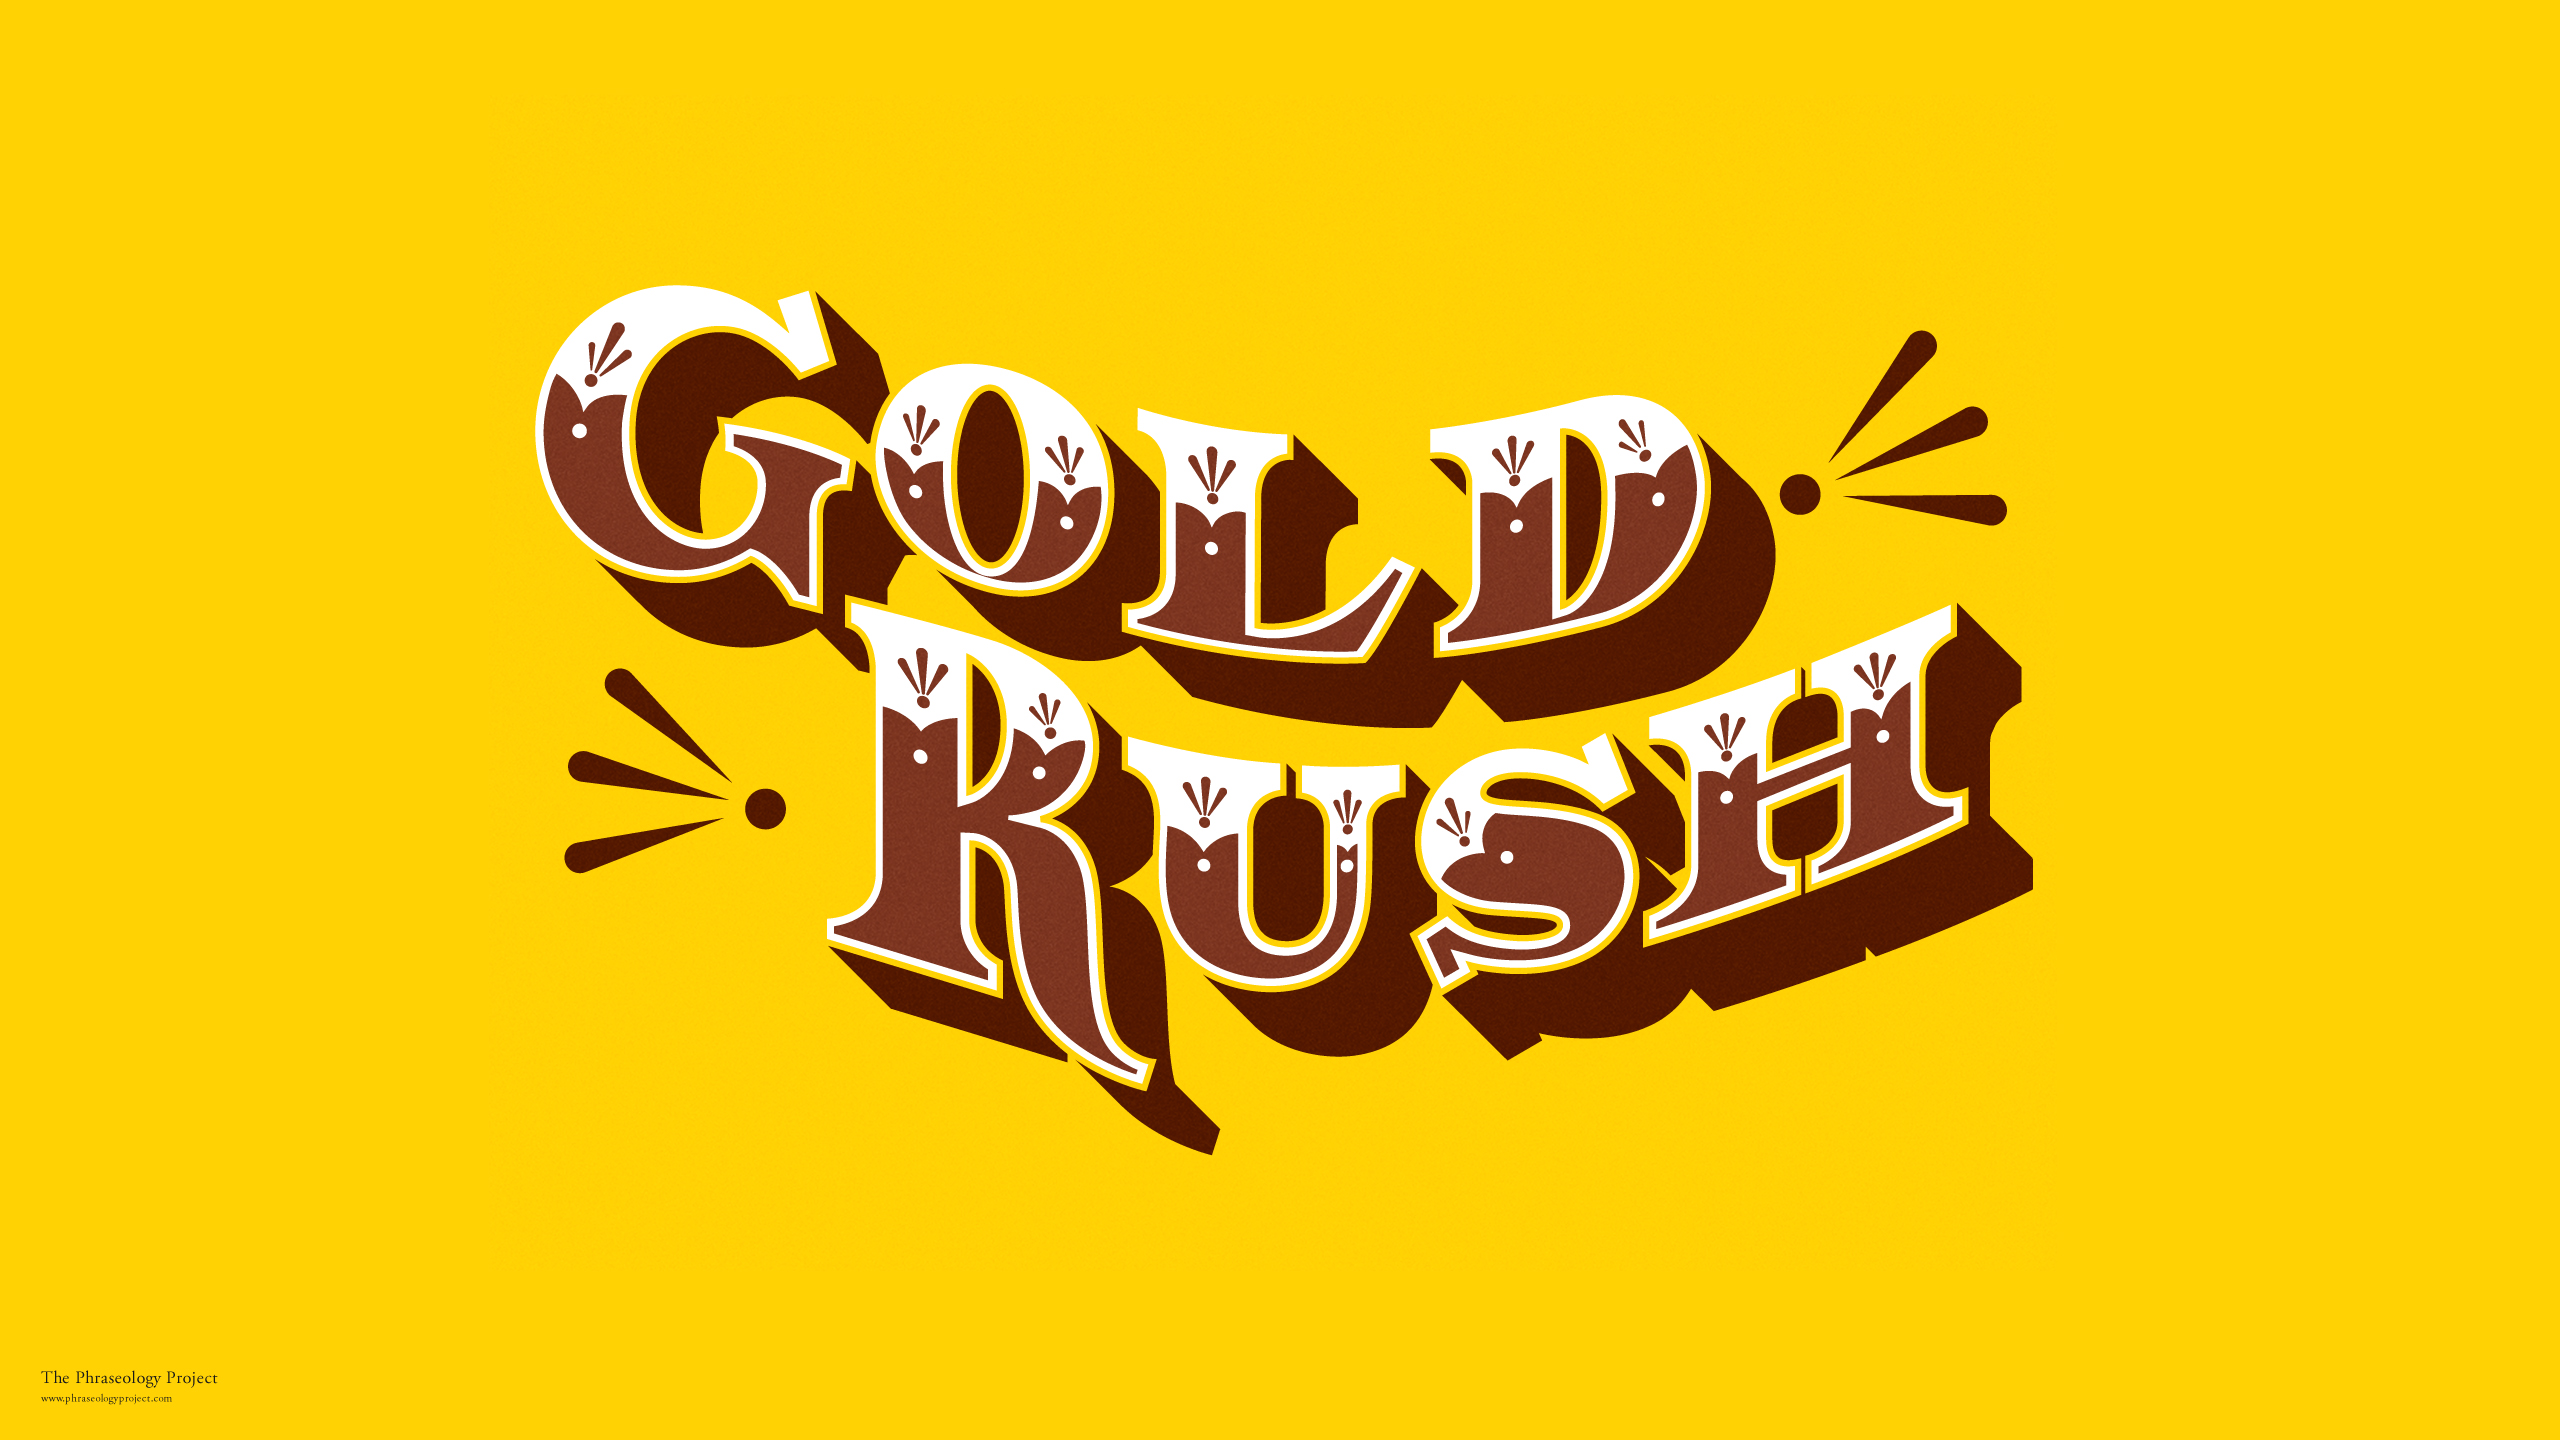 Download Gold Rush Wallpaper Gallery